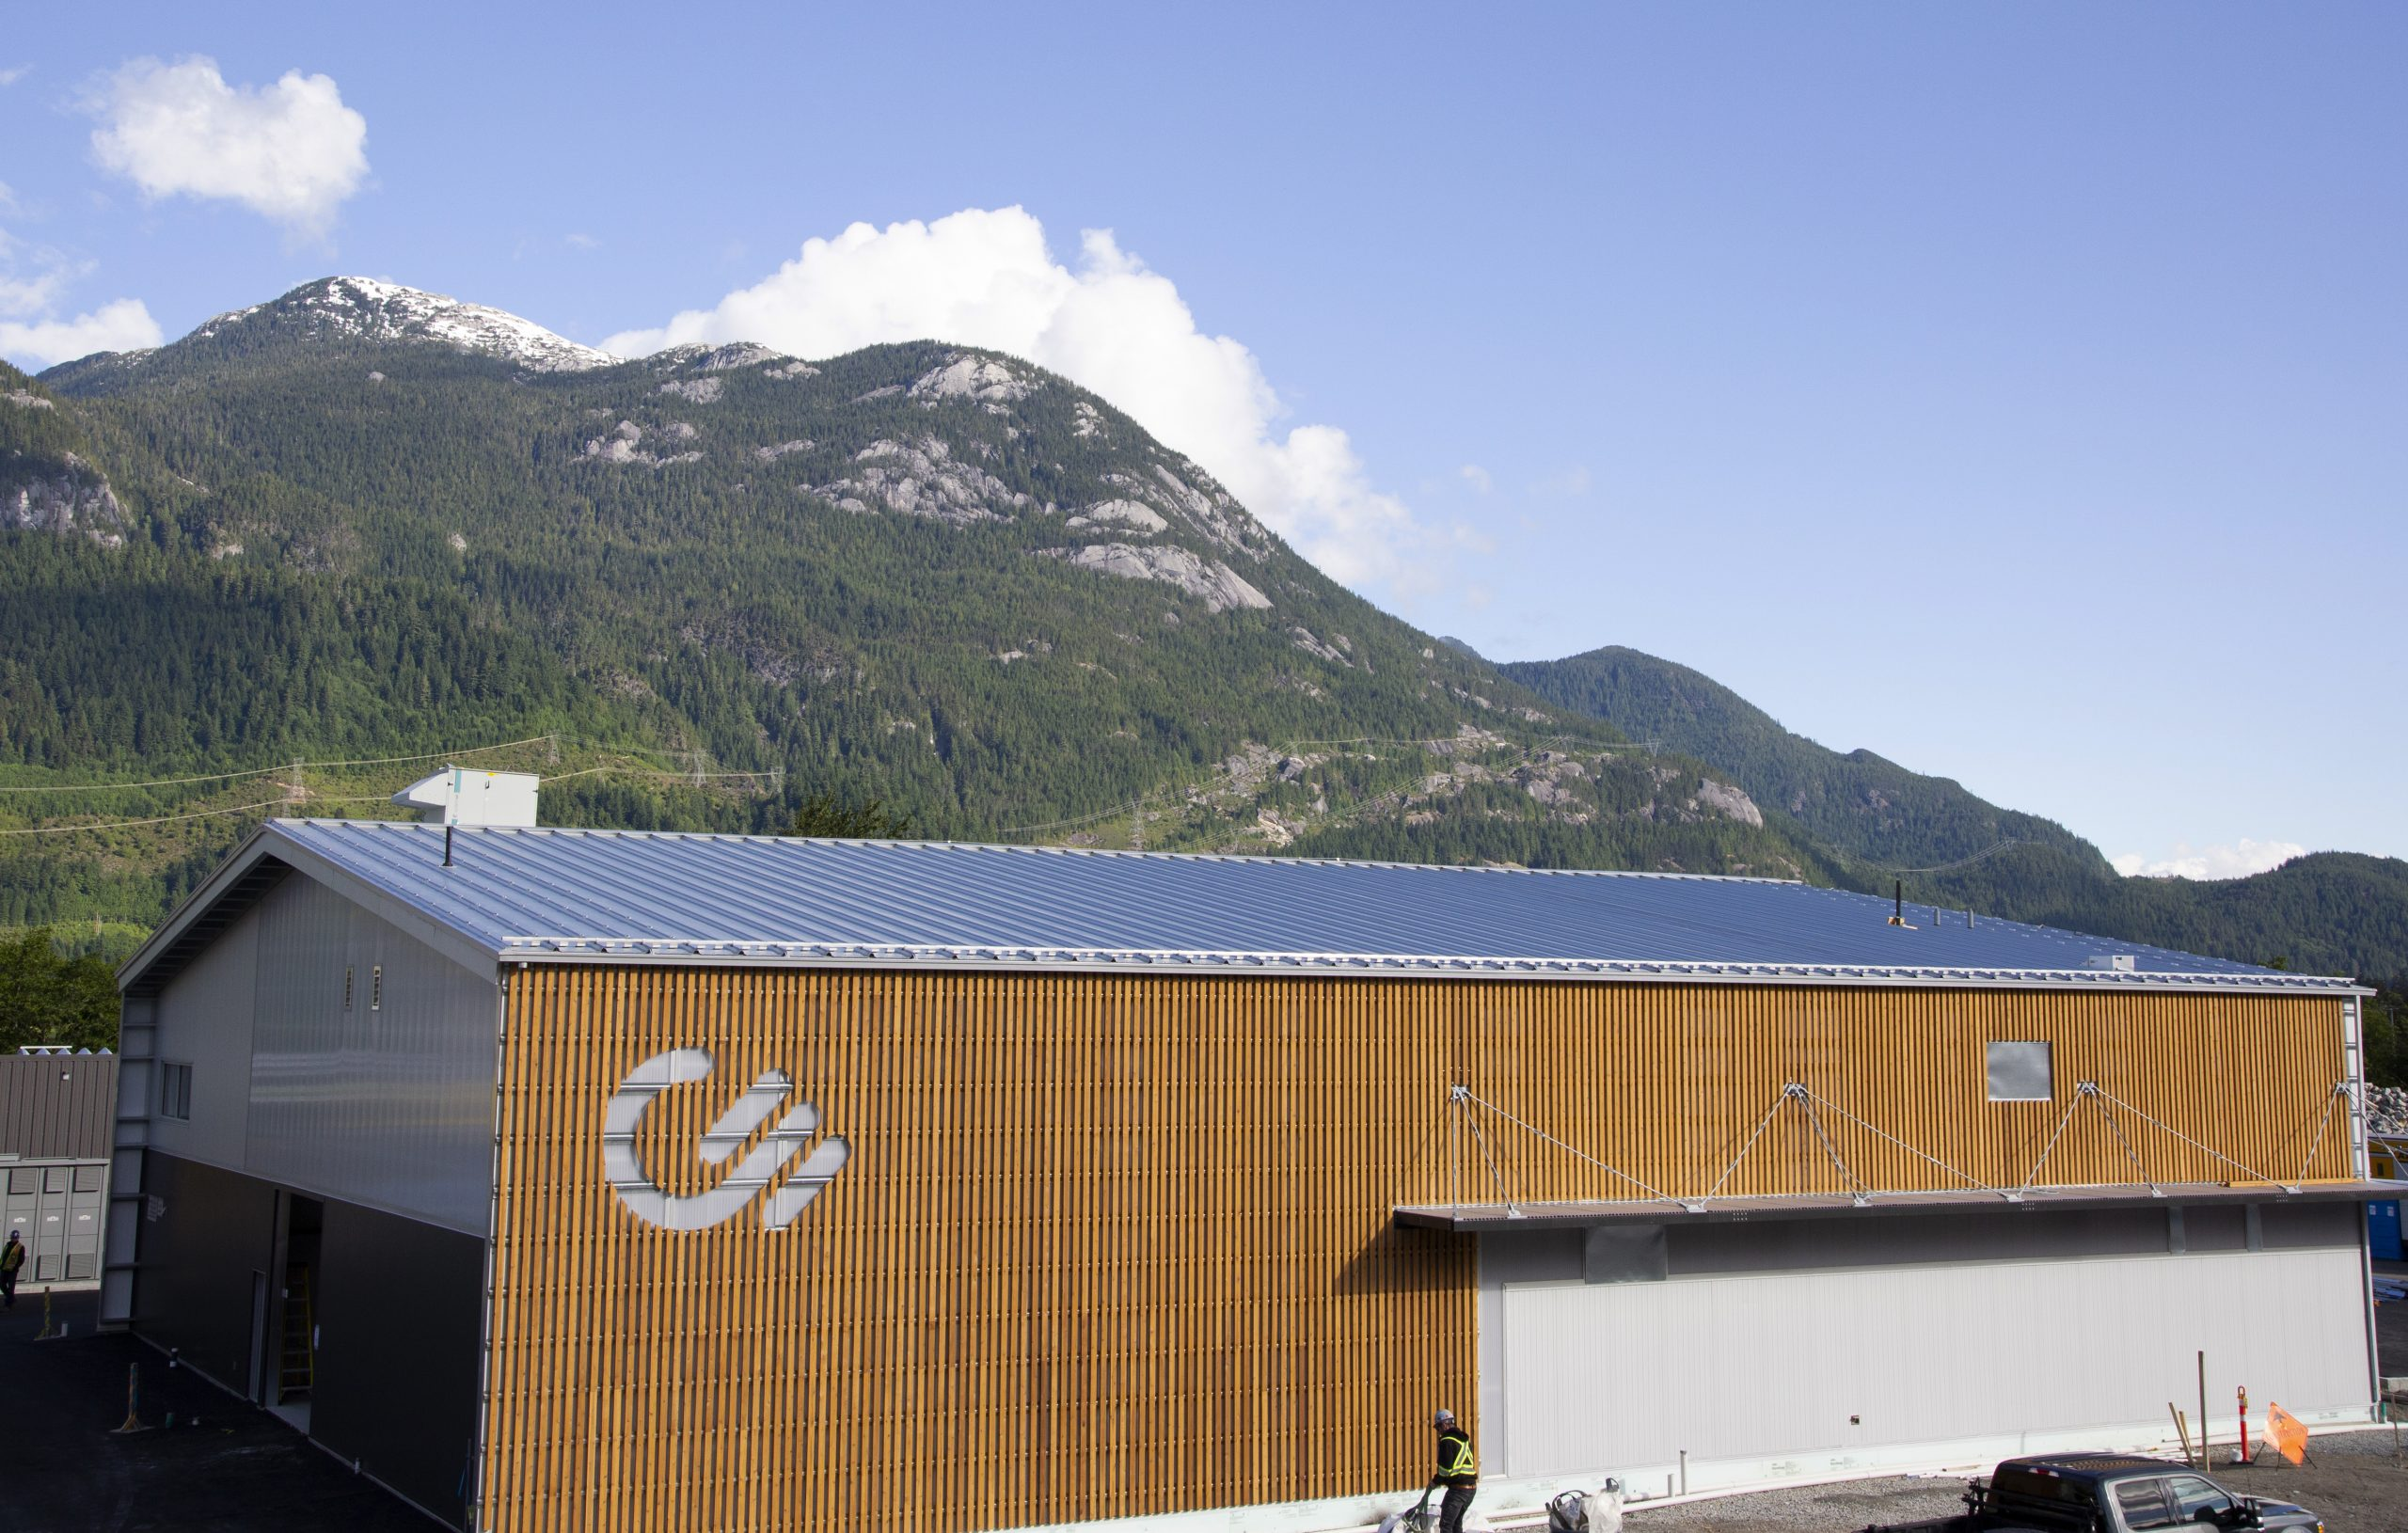 An image of wood paneling on the Carbon Engineering office building exterior, with a mountain and blue sky in the background.